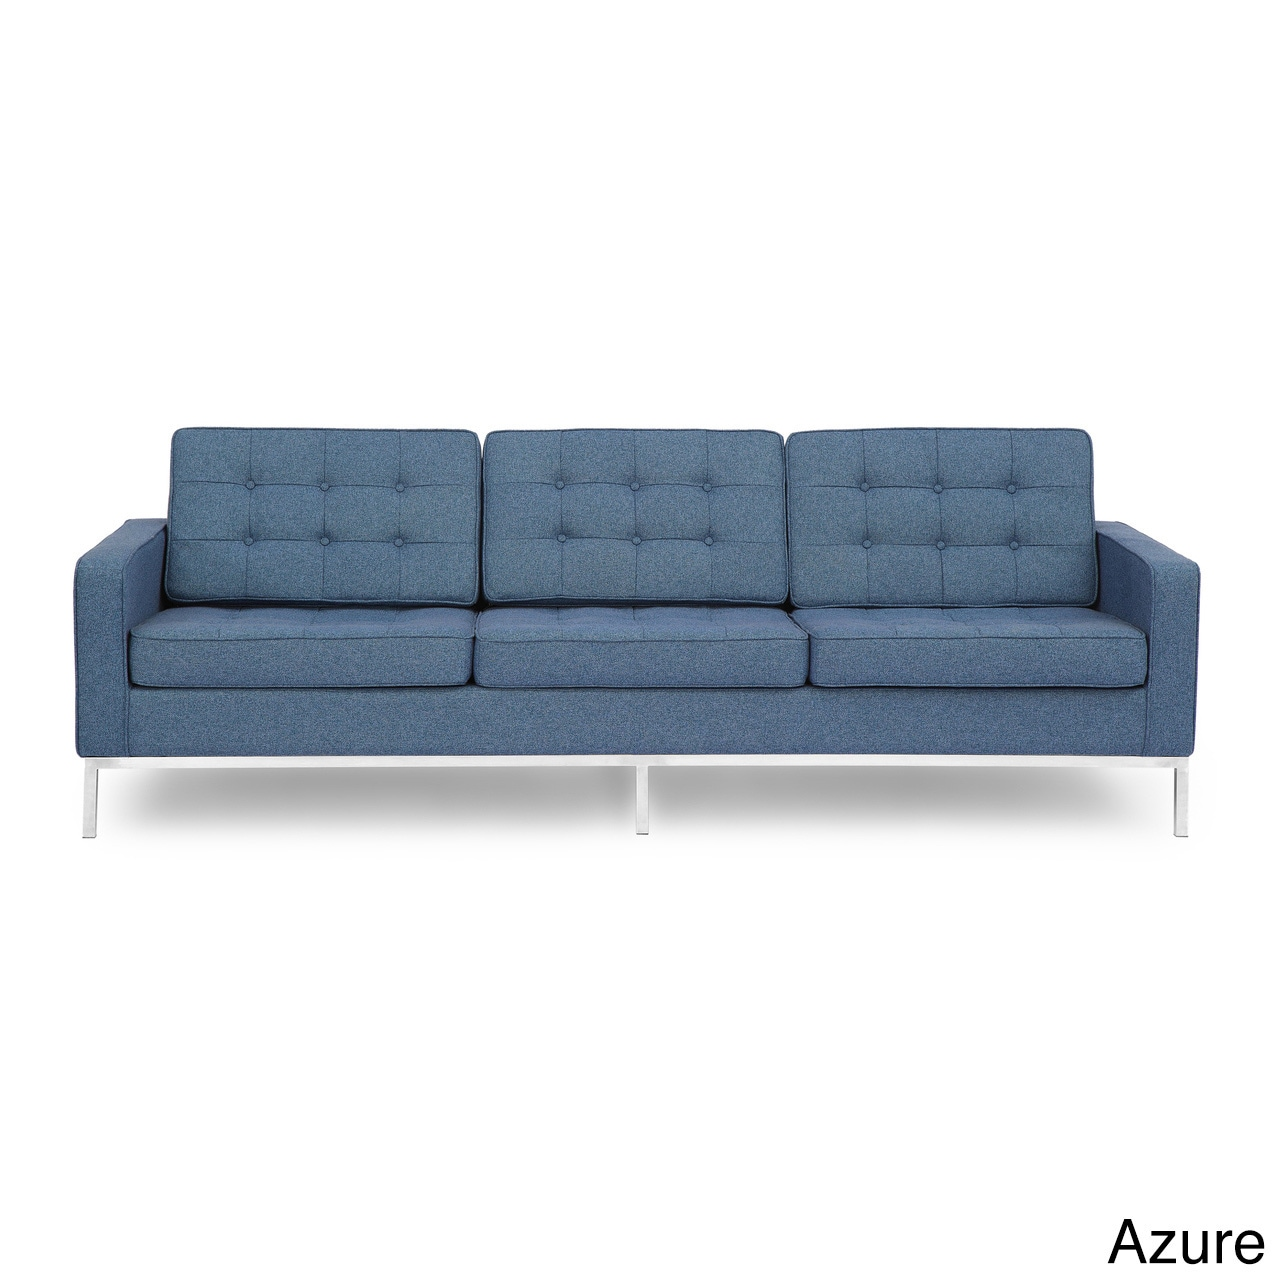 Florence Knoll Sessel Kardiel Florence Knoll Style Sofa 3 Seat Premium Fabric Upholstery